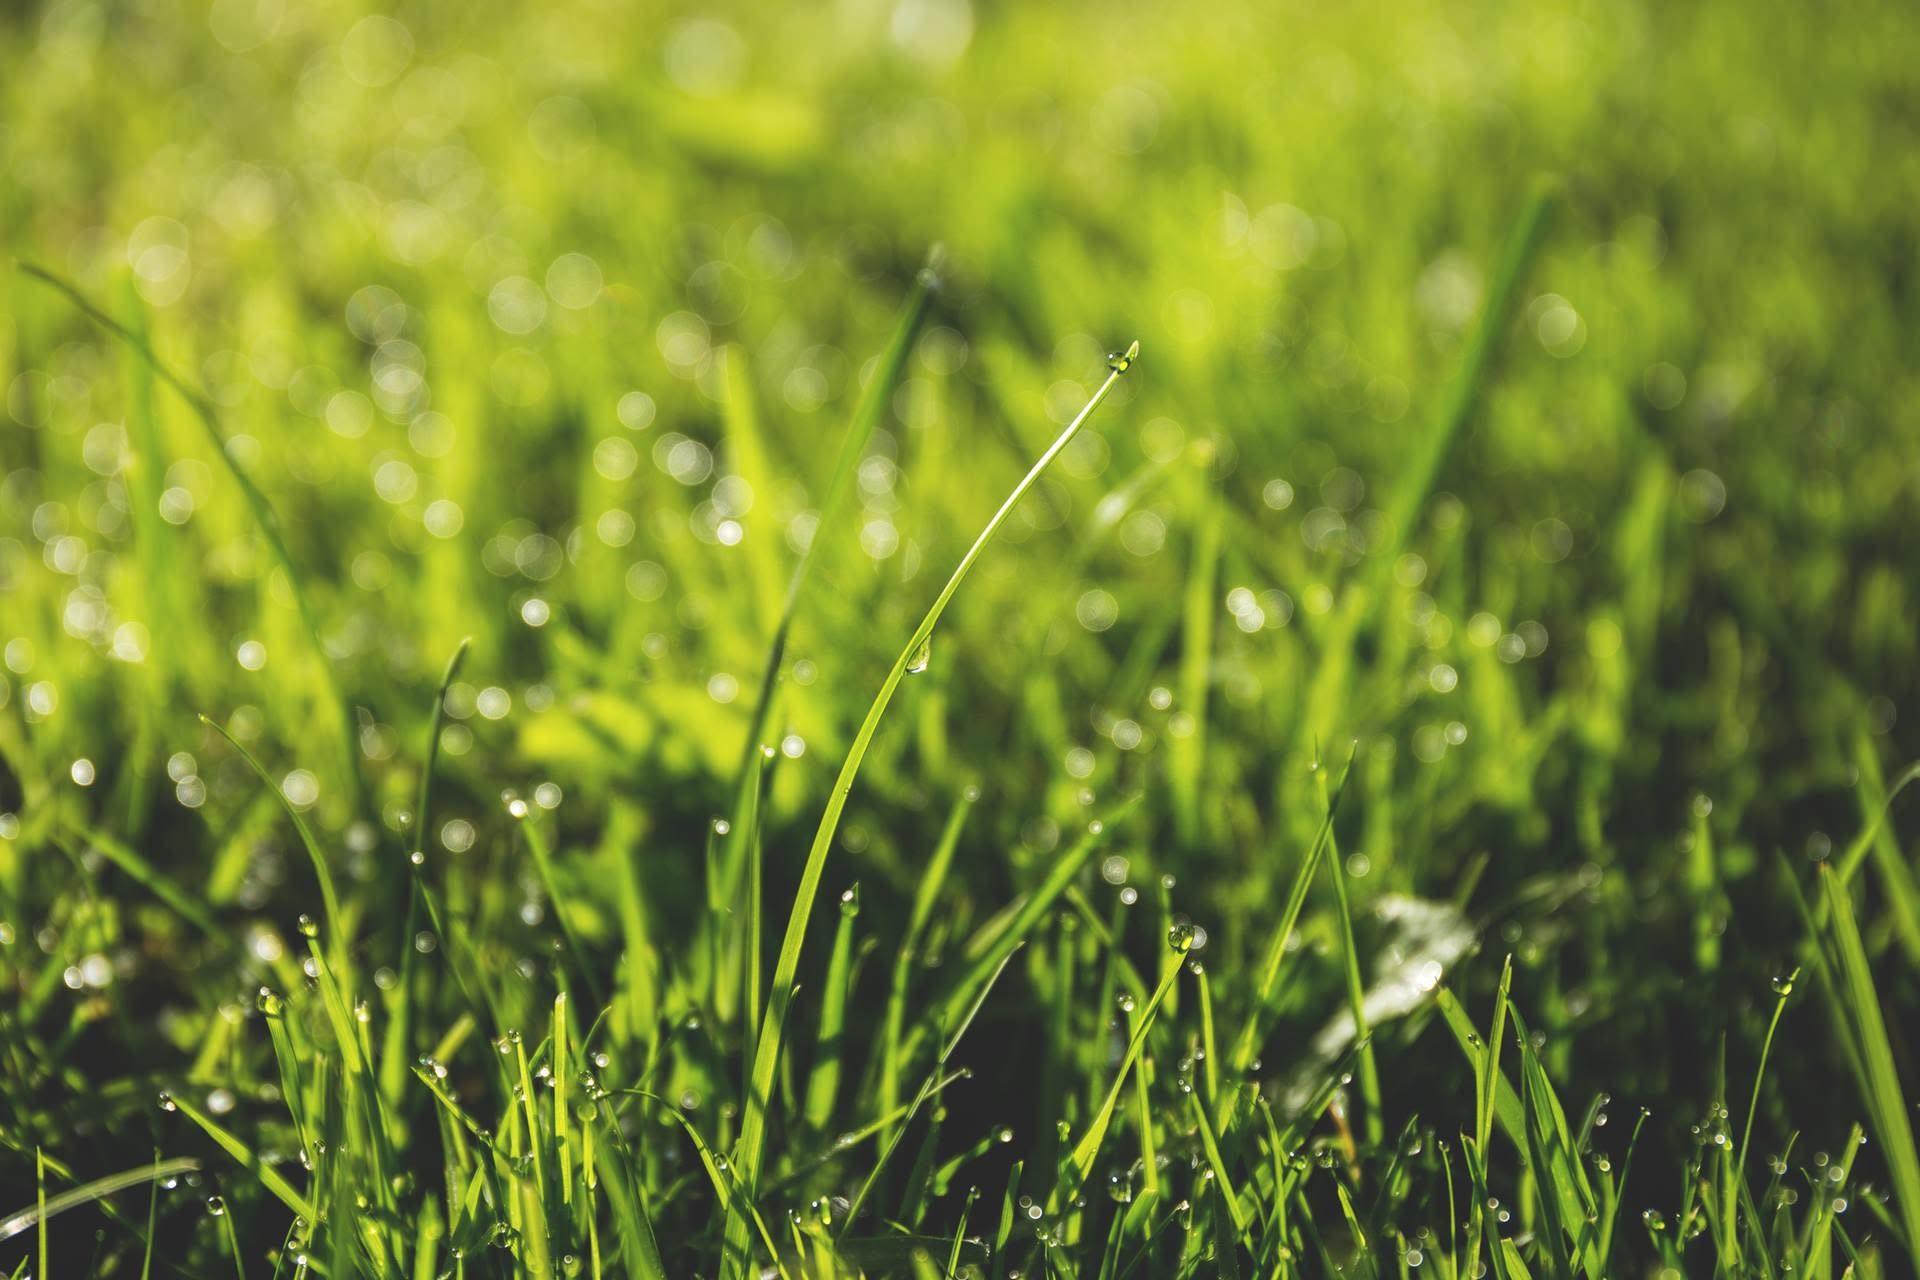 Taking Care of Your Colorado Lawn Without Wasting Resources